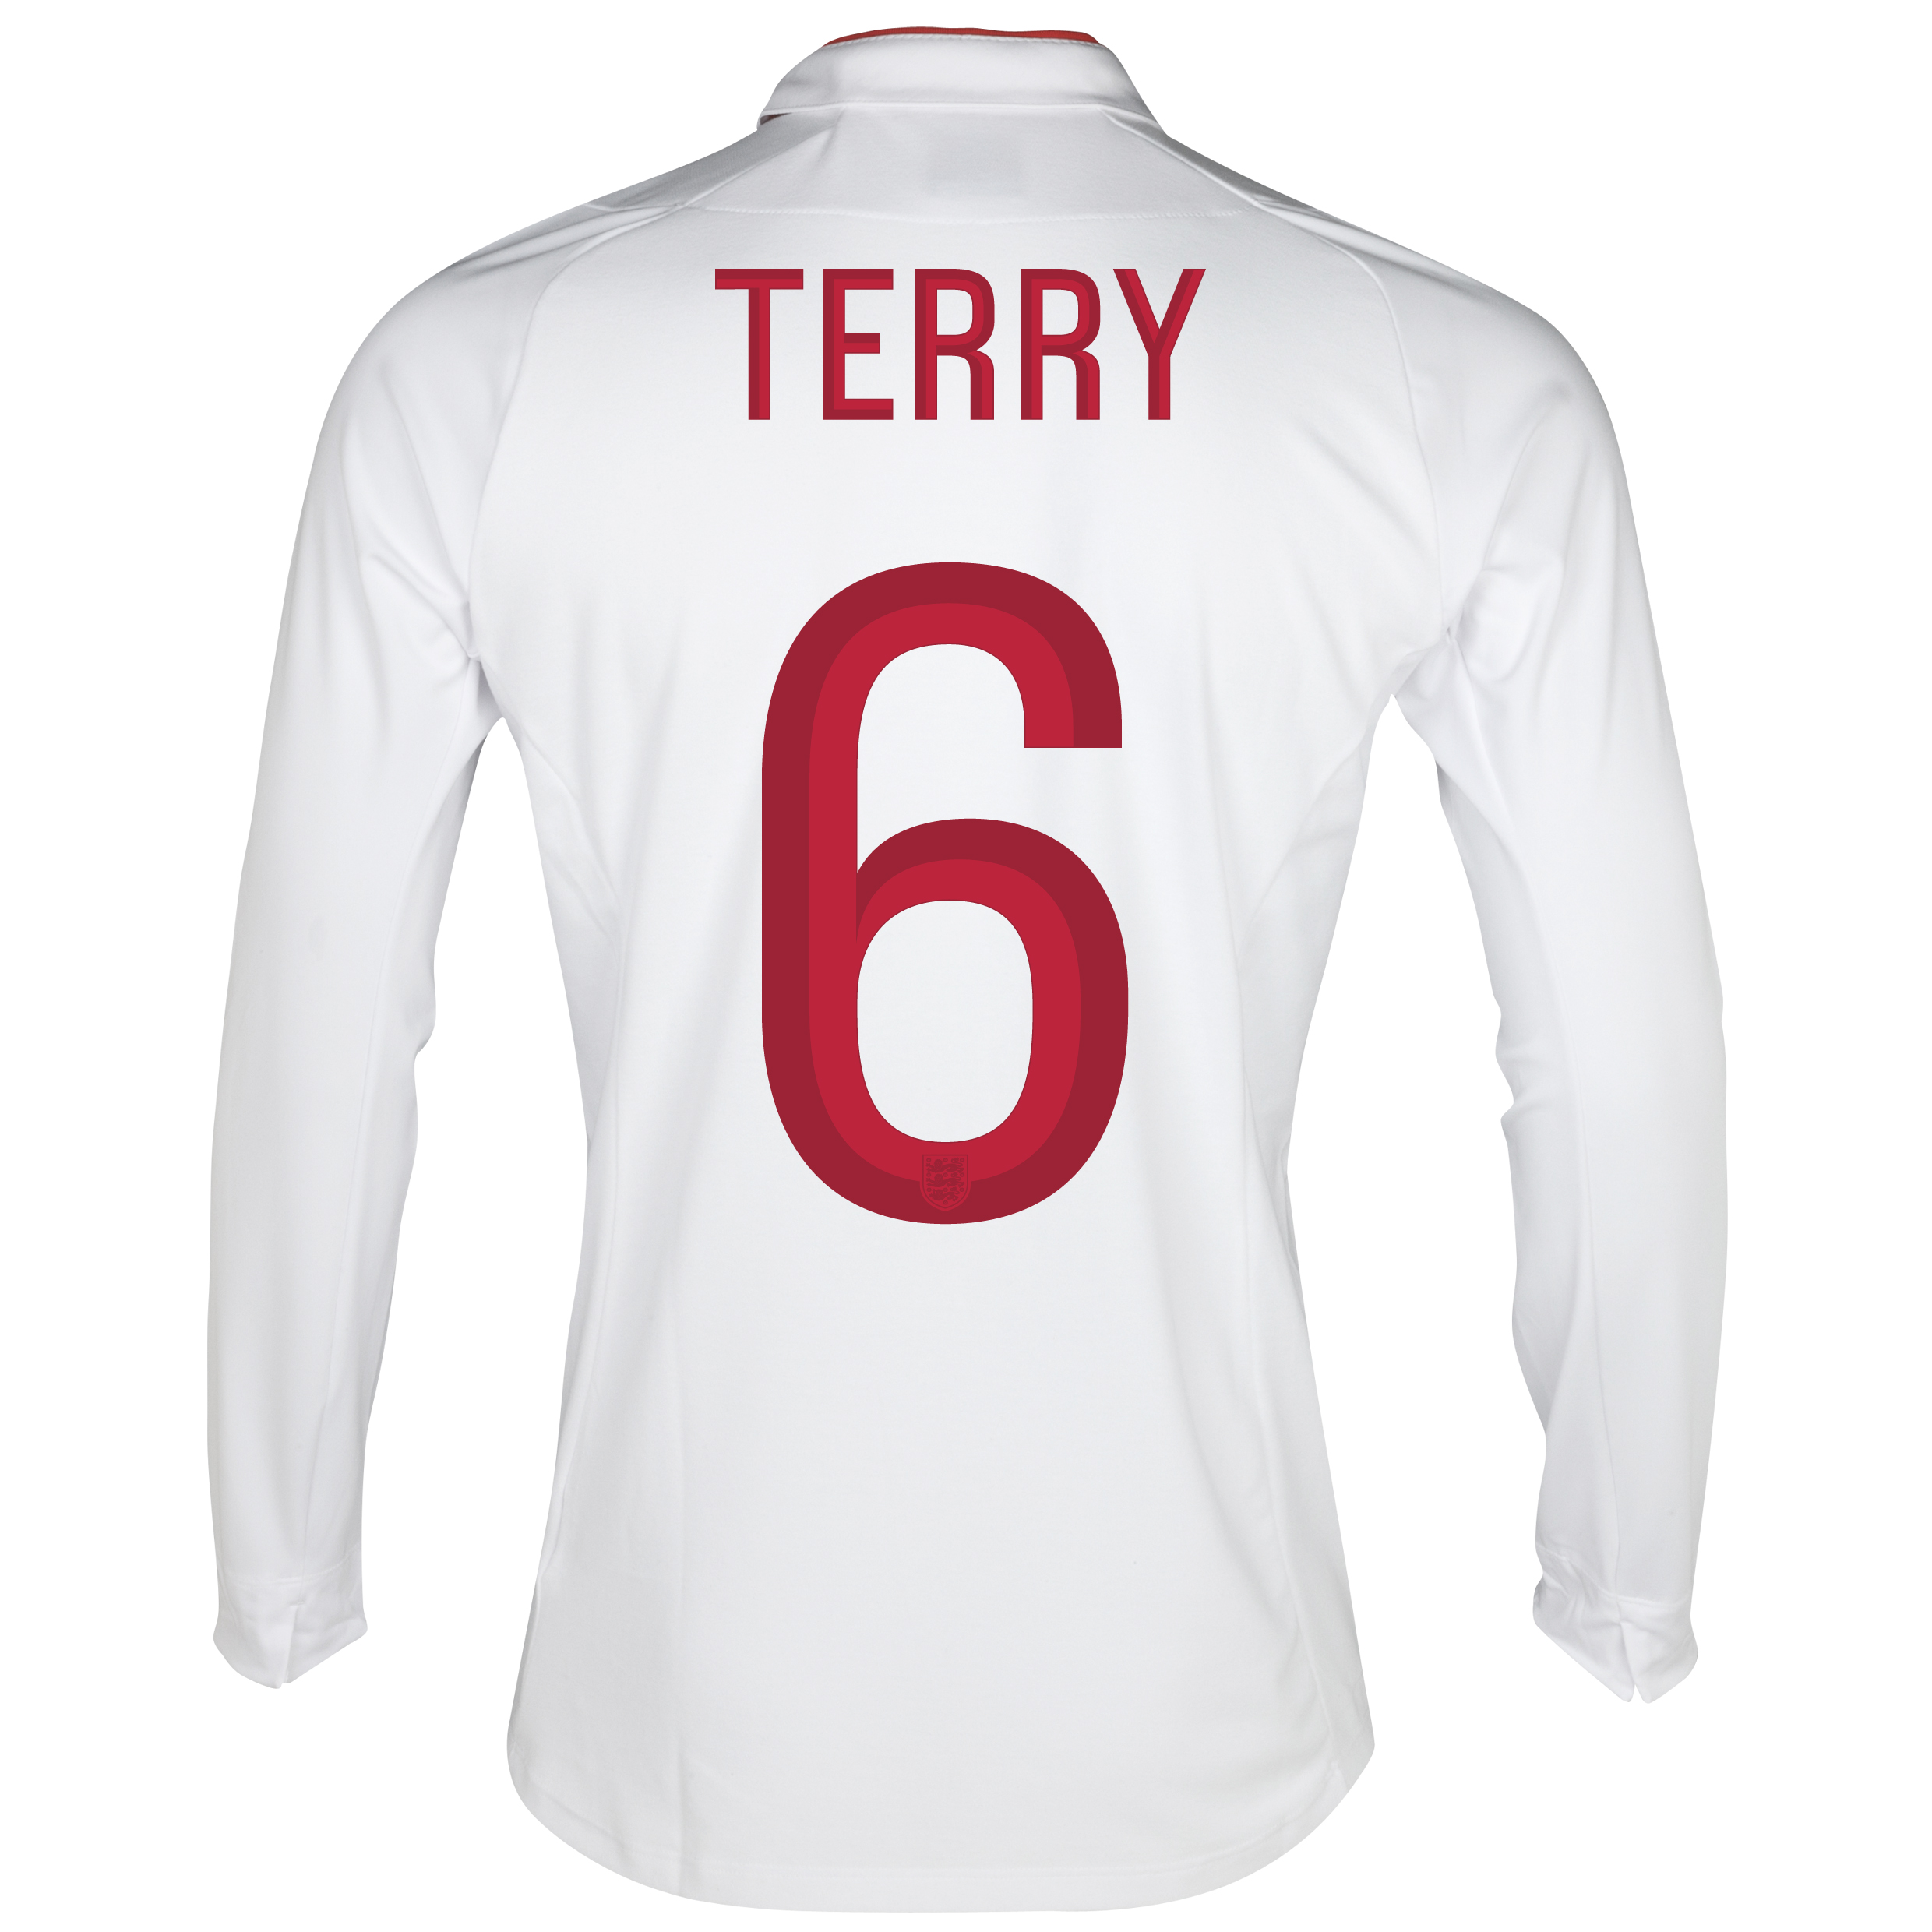 England Home Shirt 2012/13 - Long Sleeve - Boys with Terry 6 printing